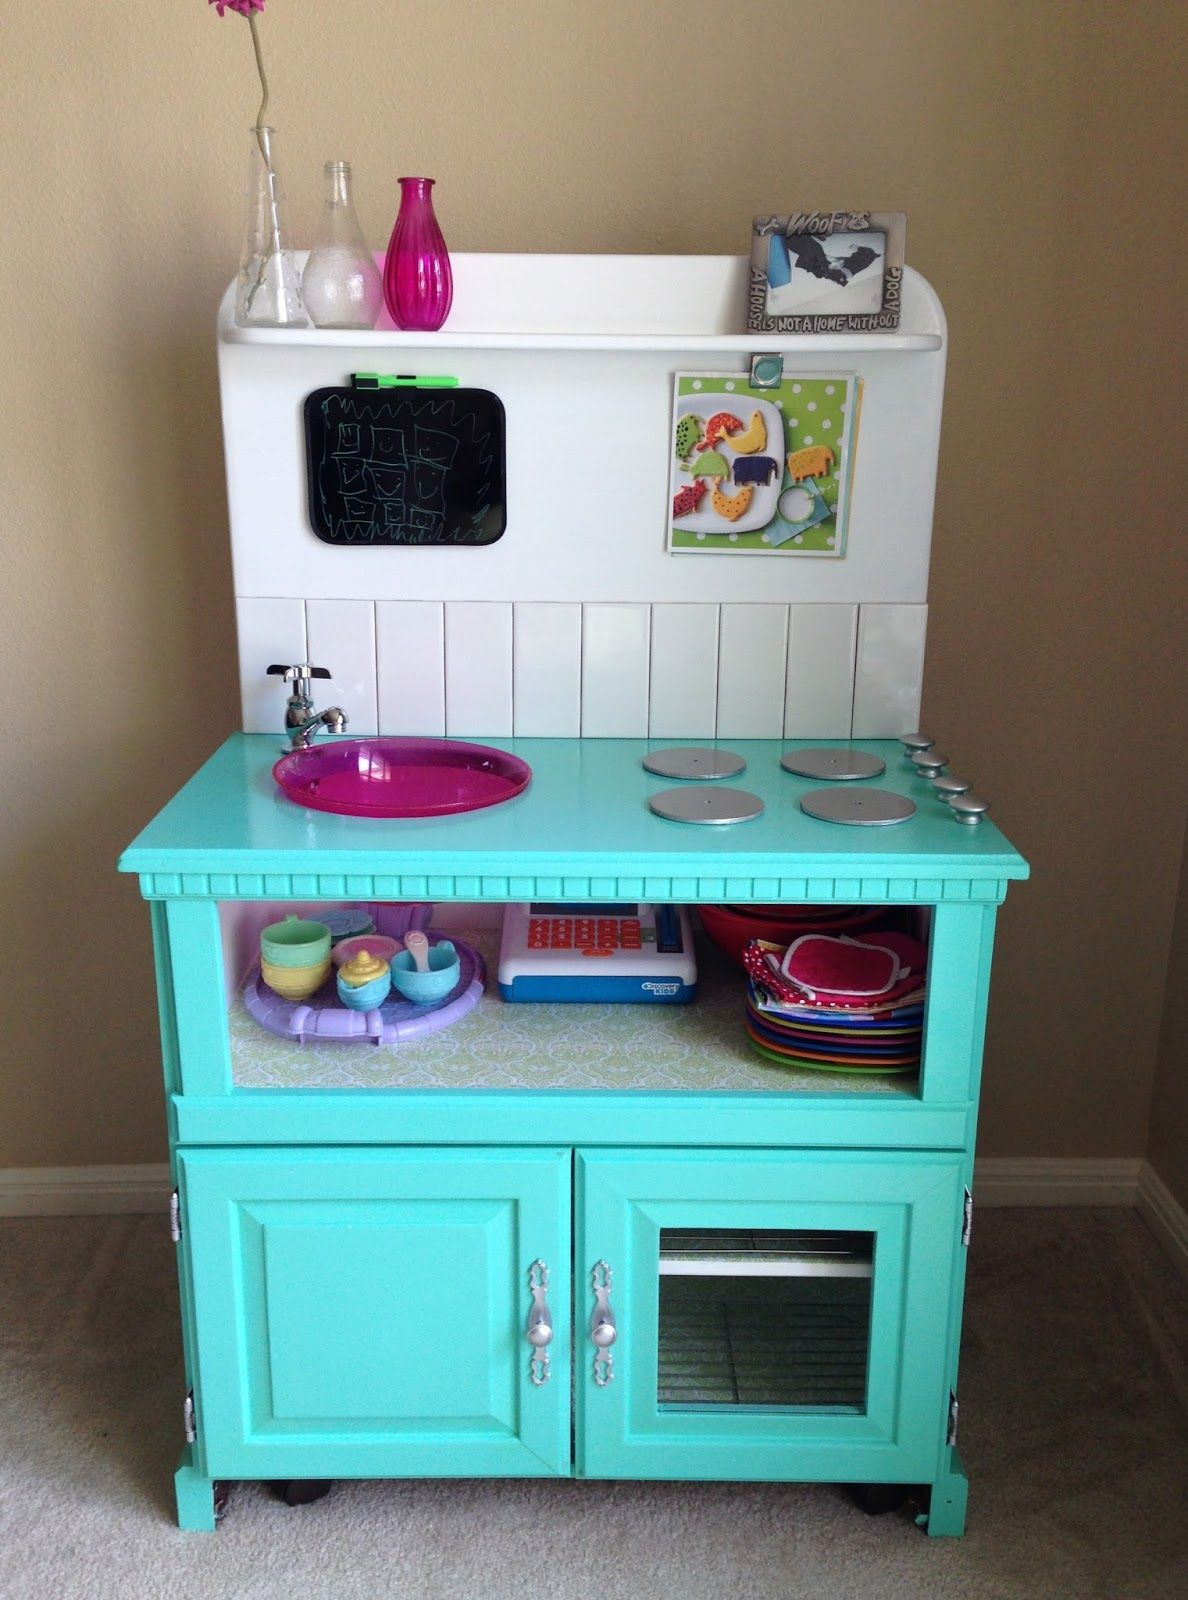 Finally! The DIY play kitchen is done! | Diy play kitchen ...